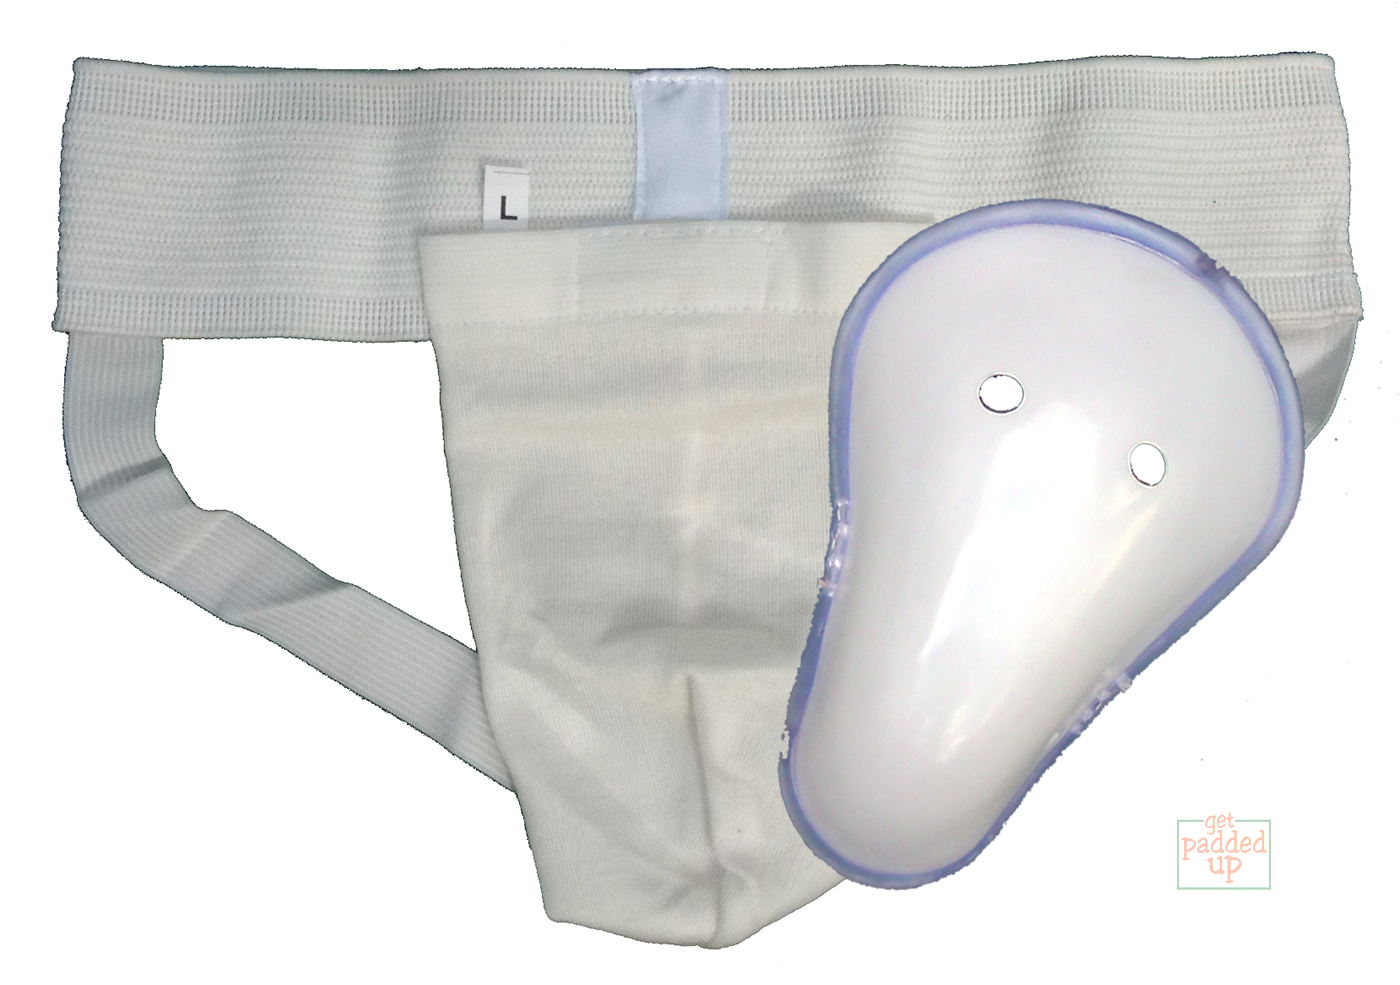 getpaddedup ULTRA CRICKET JOCK STRAP AND ABDOMINAL GUARD